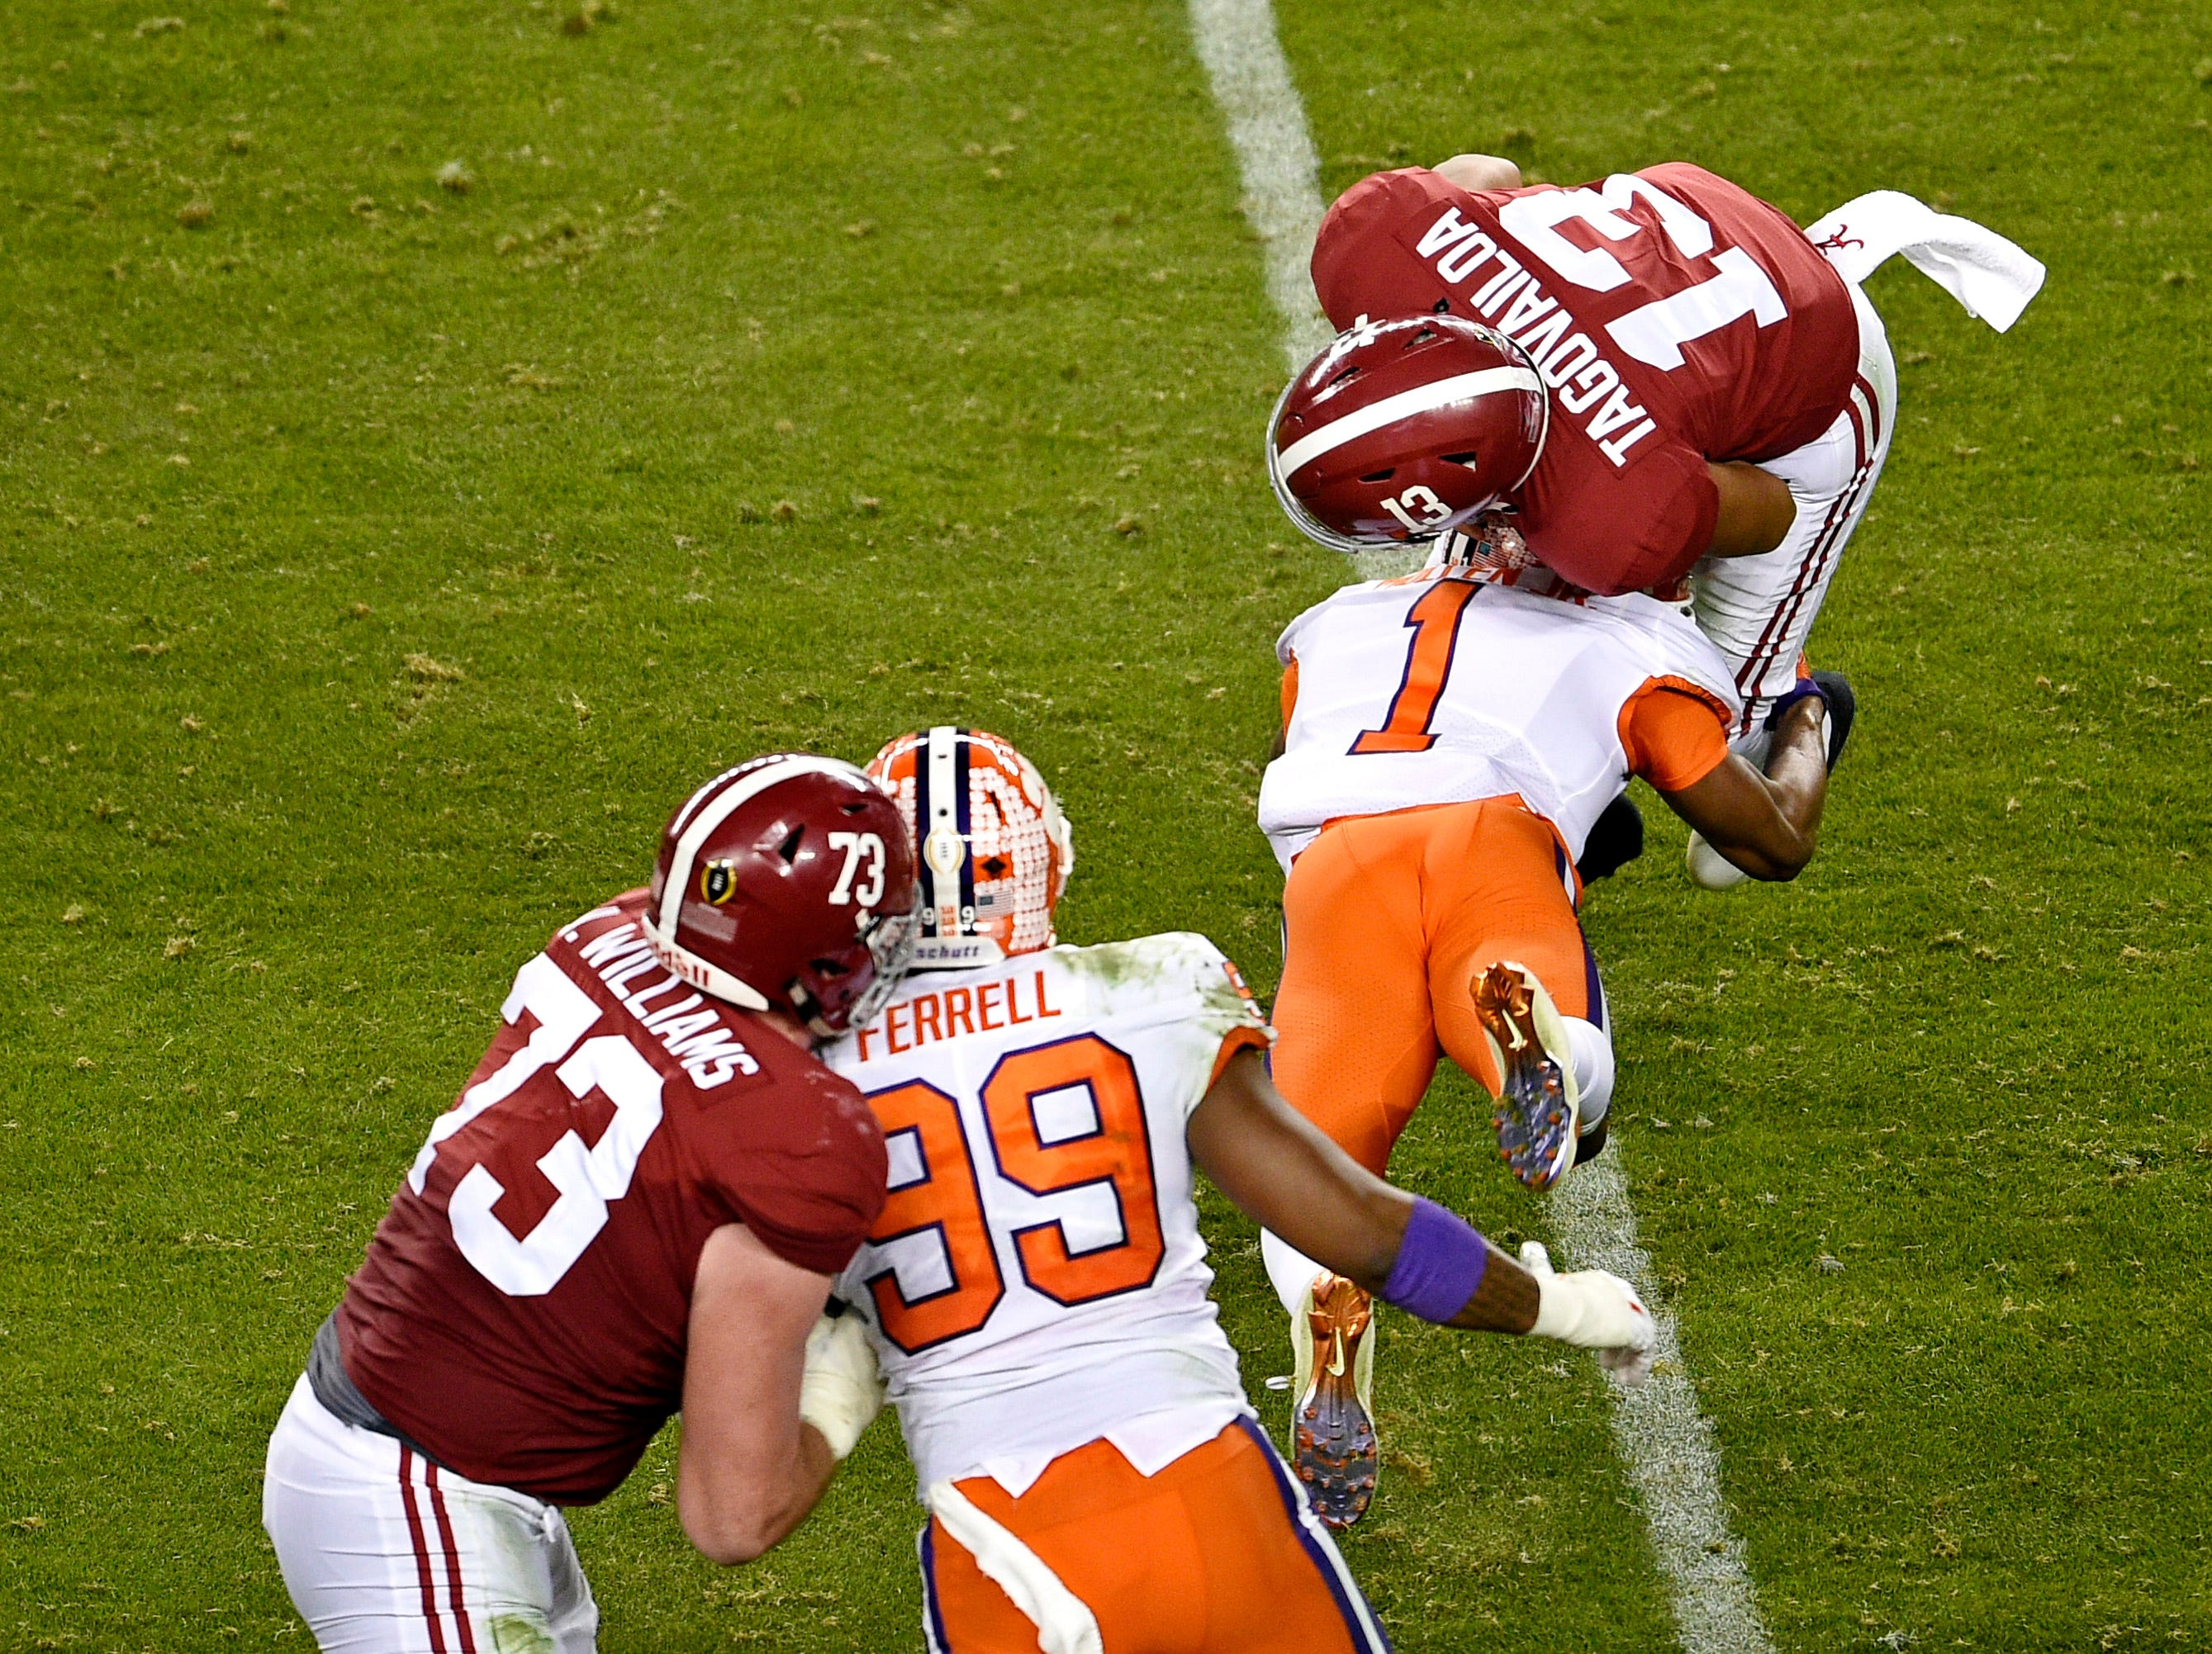 Jan 7, 2019; Santa Clara, CA, USA; Clemson Tigers cornerback Trayvon Mullen (1) sacks Alabama Crimson Tide quarterback Tua Tagovailoa (13) during the first half during the 2019 College Football Playoff Championship game at Levi's Stadium. Mandatory Credit: Kelvin Kuo-USA TODAY Sports